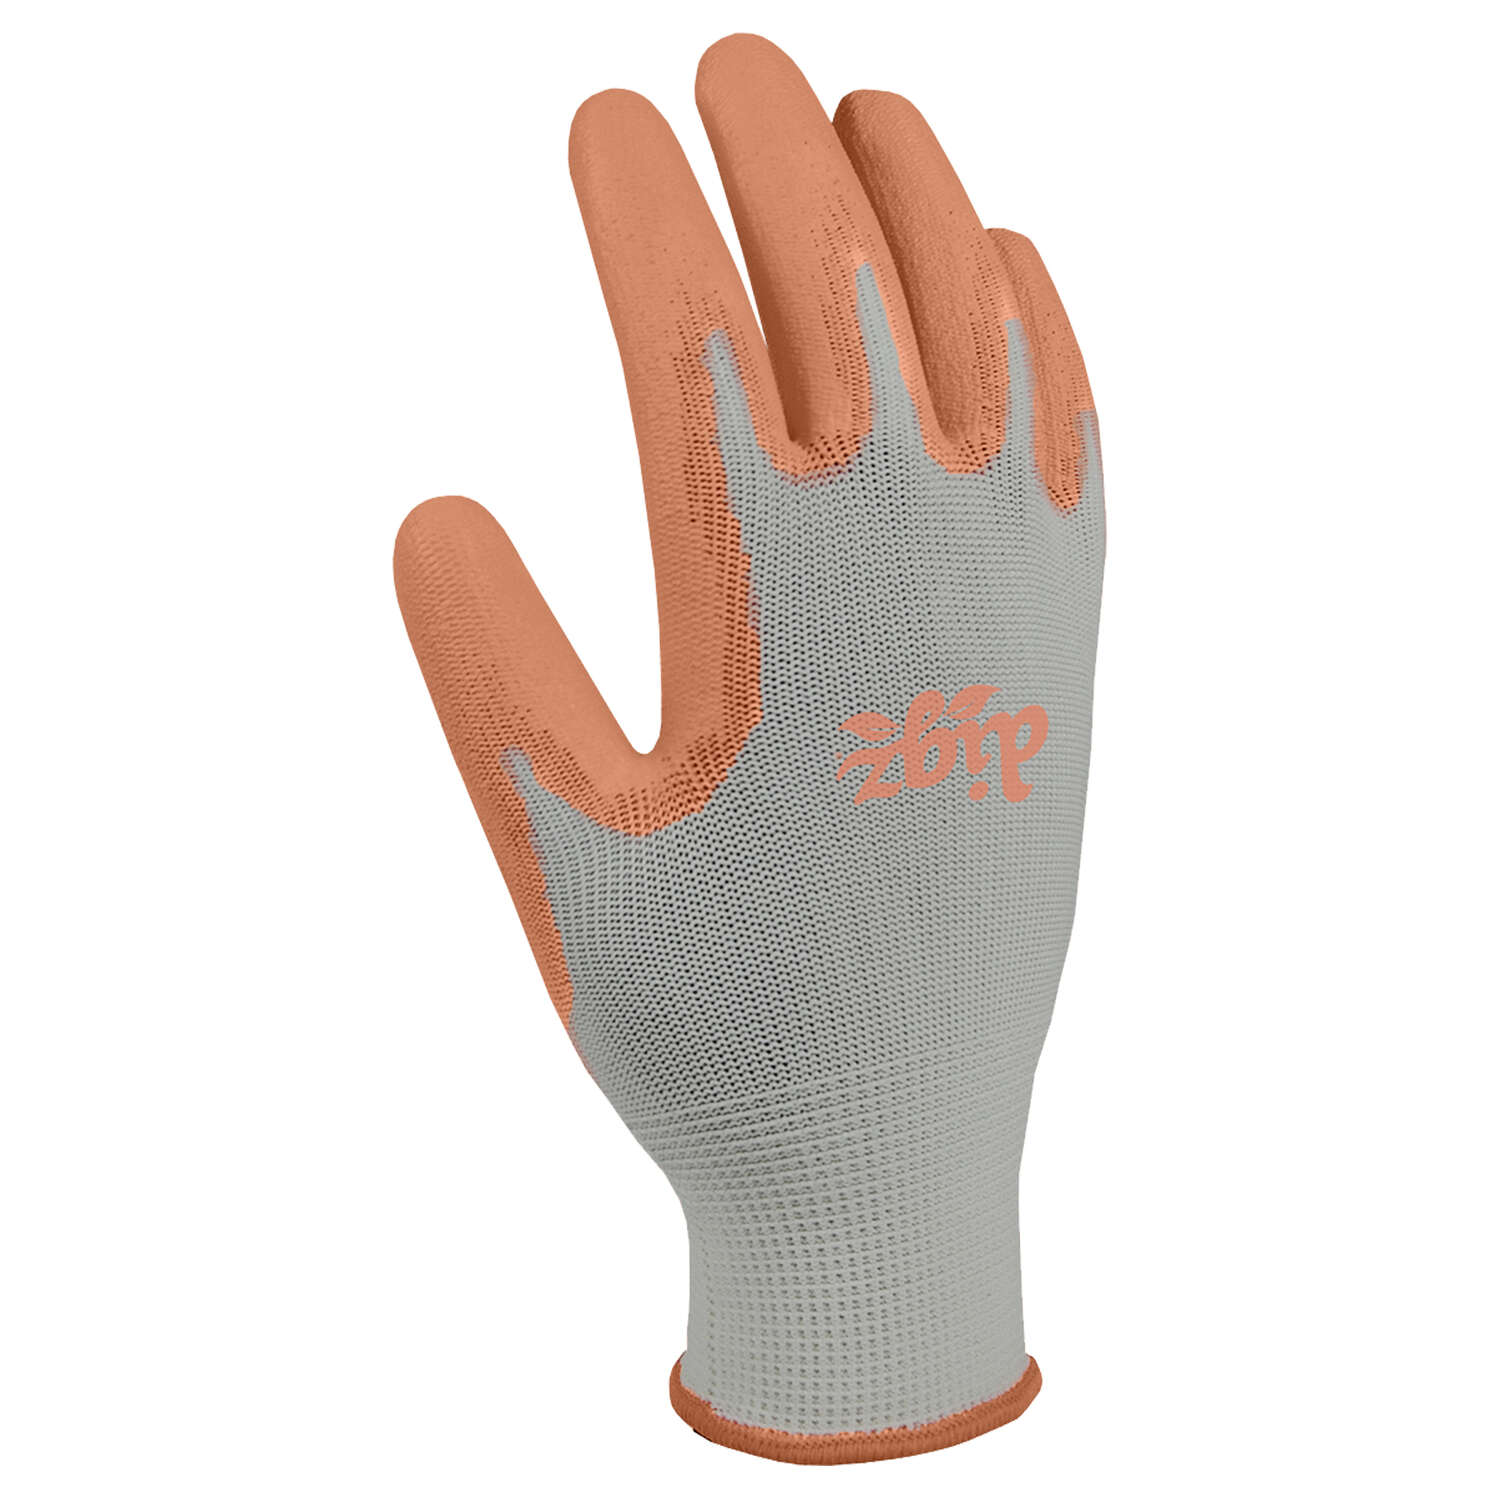 Digz  M  Polyurethane Coating  Stretch Fit  Gray/Orange  Gardening Gloves